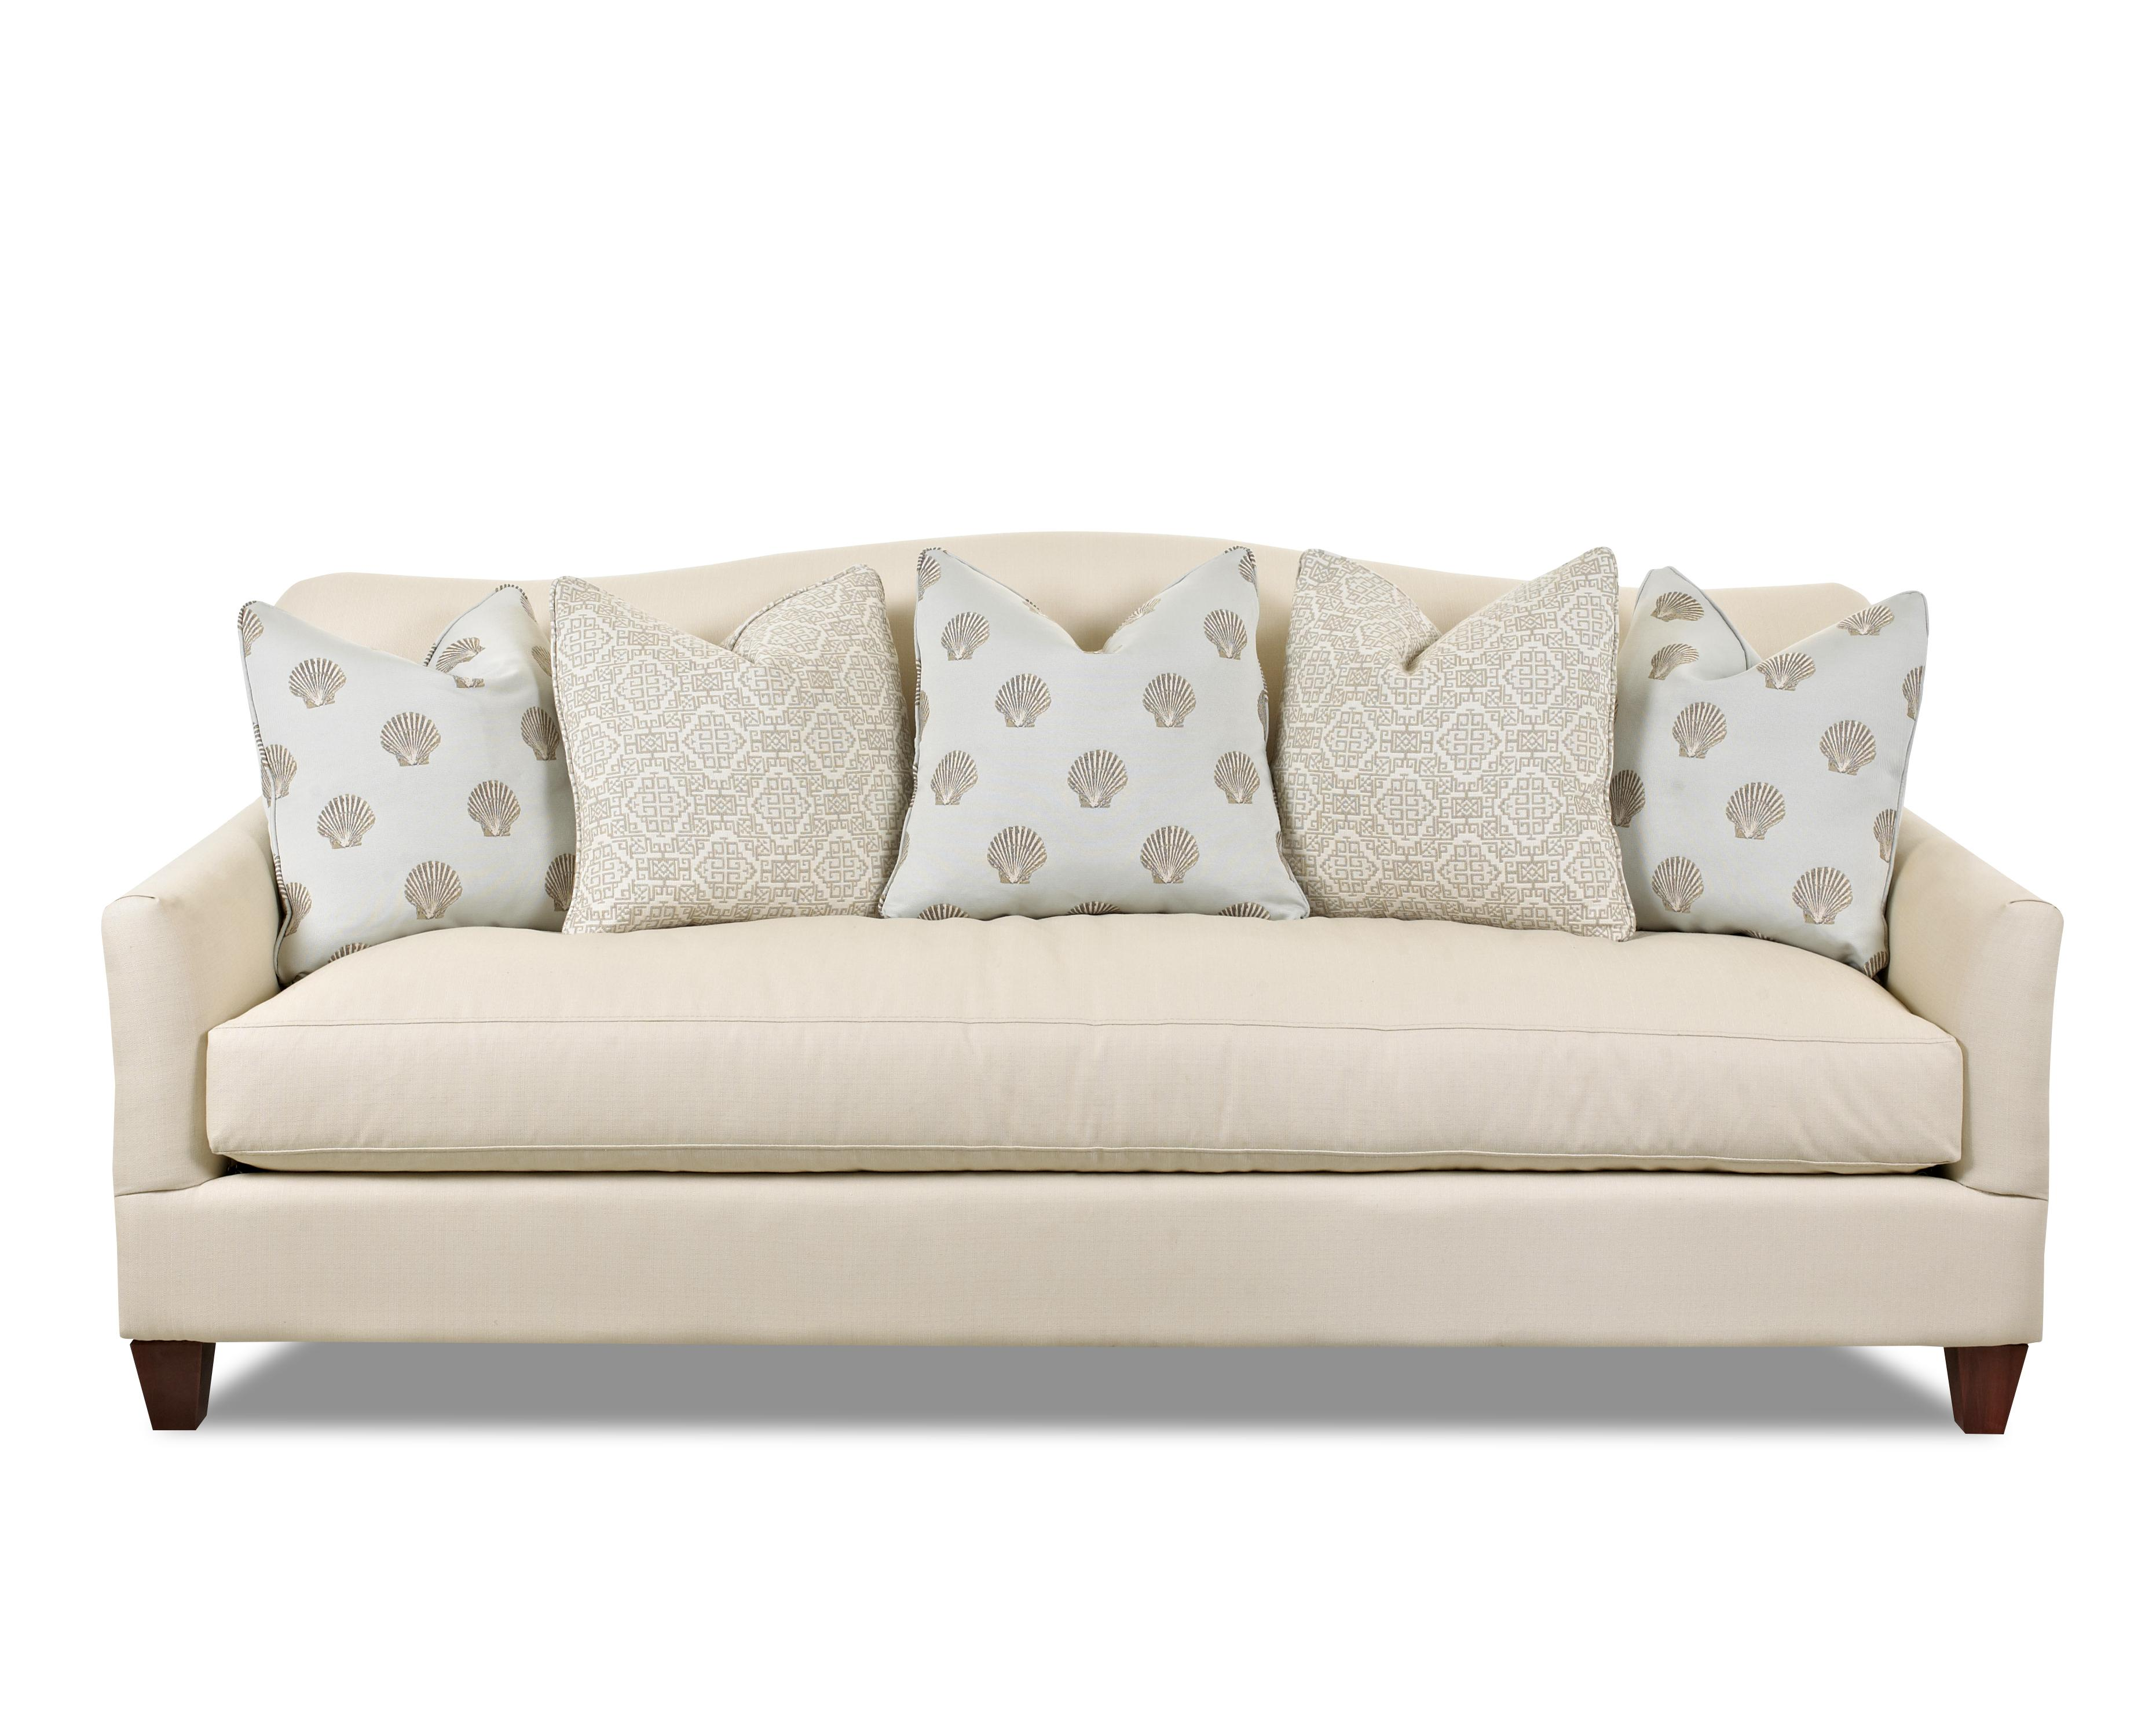 Sofa : products2Fklaussner2Fcolor2Fleighton20313d3130020s b4 from www.wolffurniture.com size 3723 x 2979 jpeg 592kB